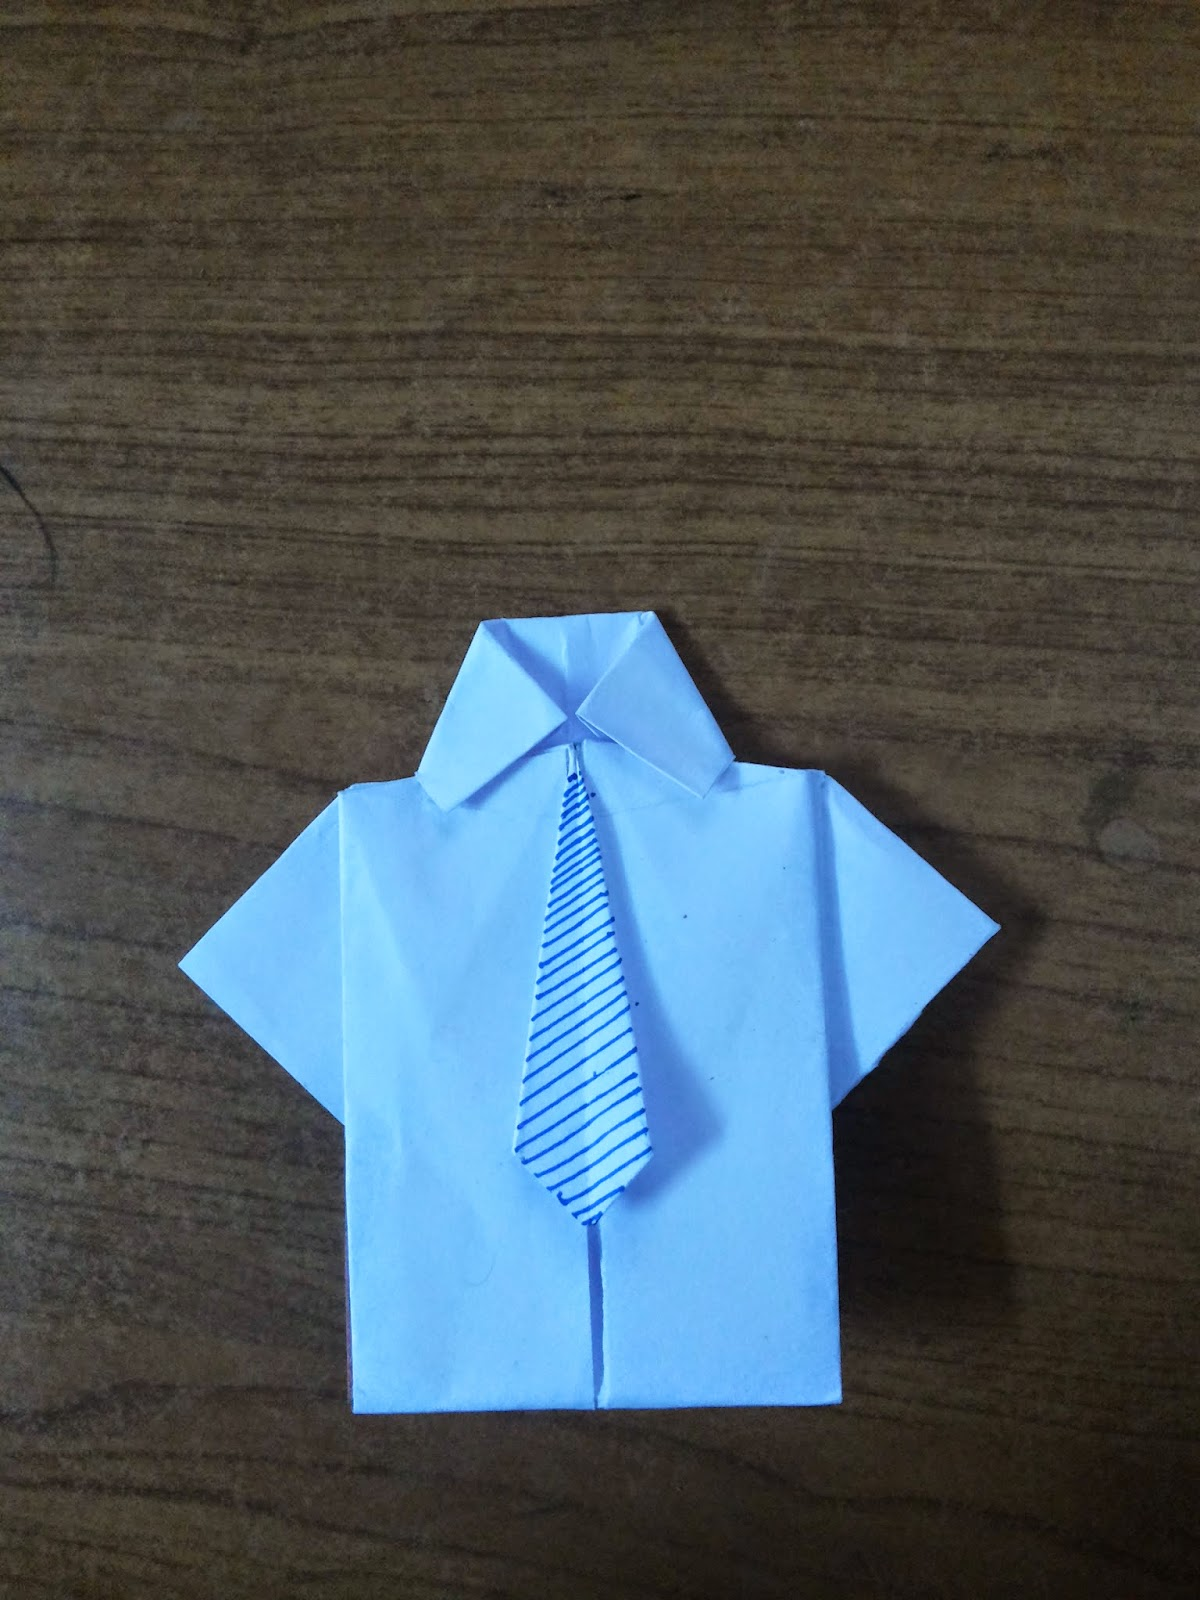 How to make a Paper shirt and tie? (easy origami) - YouTube | 1600x1200